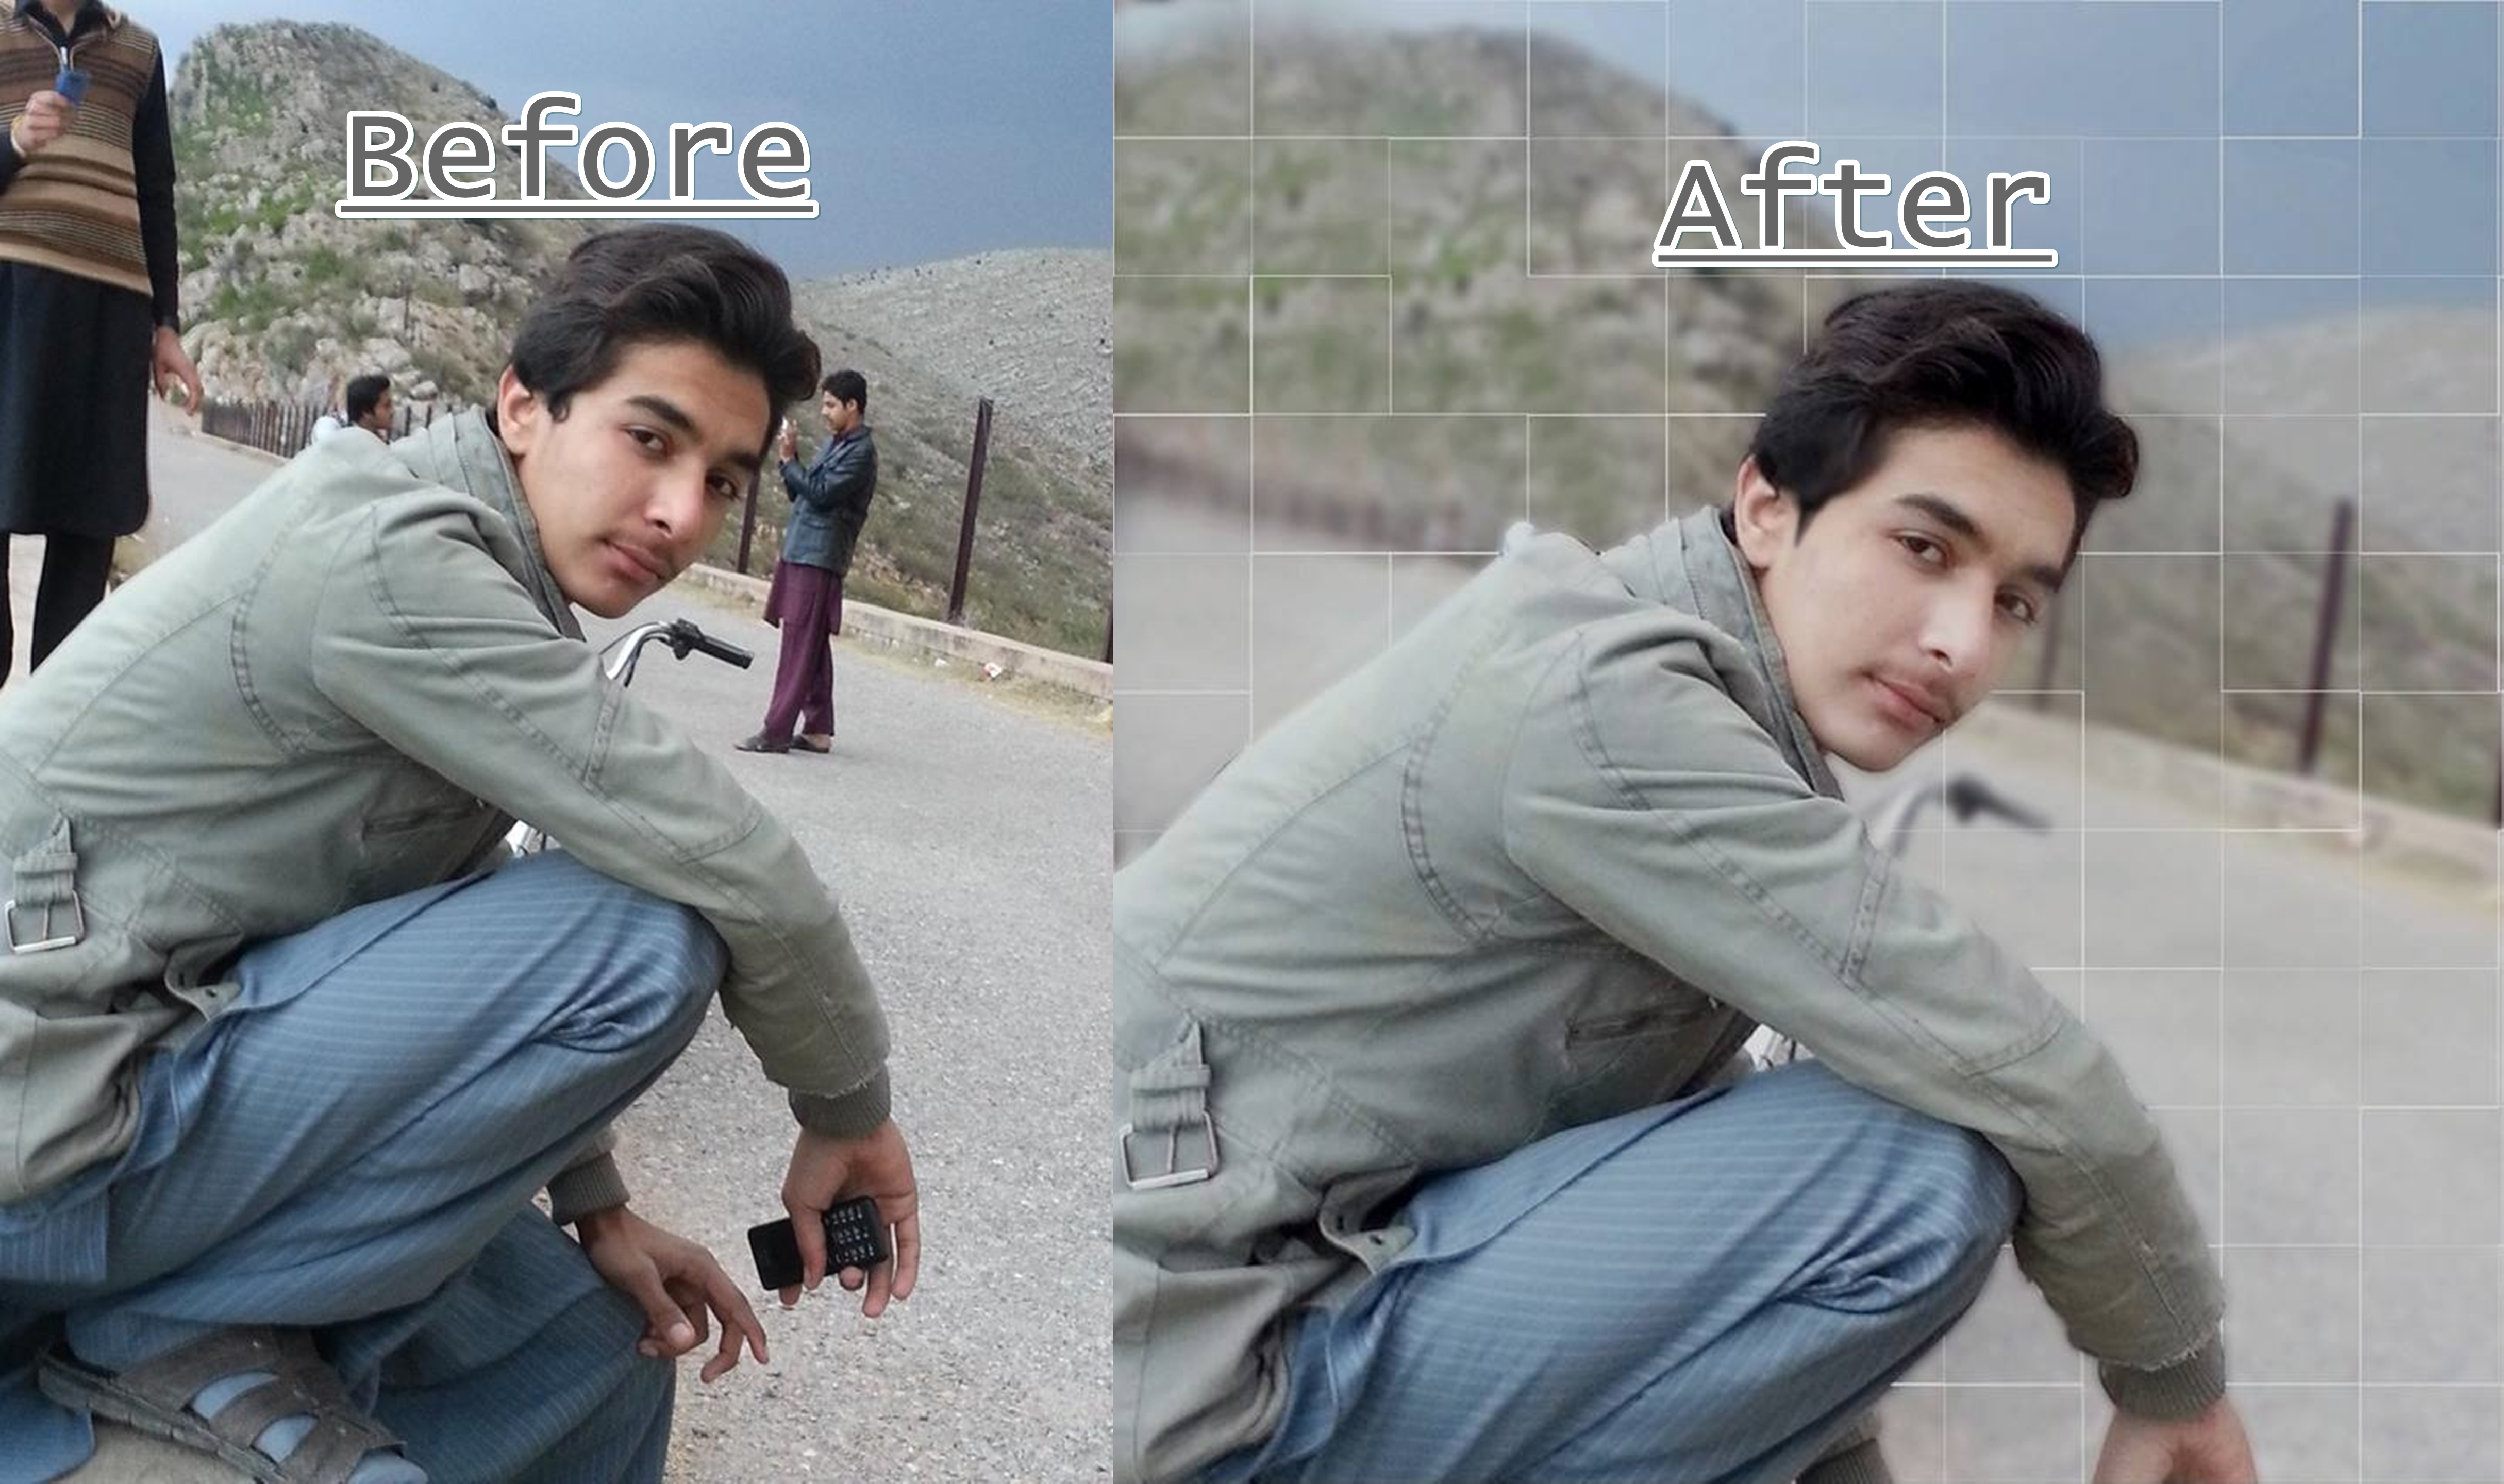 I will do any 2 photoshop jobs within 24 hours